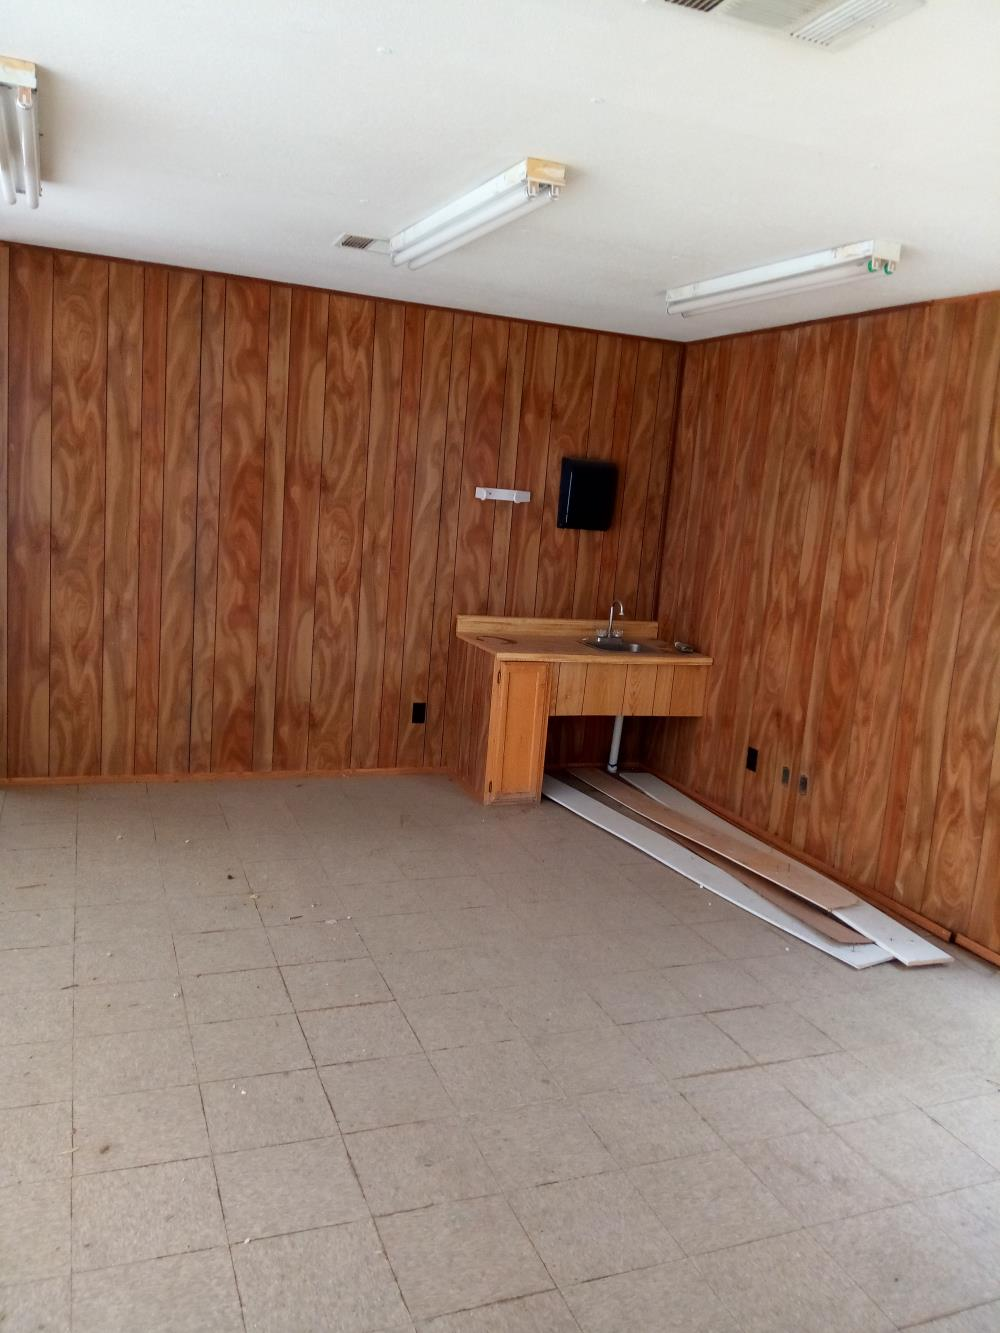 64'x28' Section Modular for sale in San Antonio, TX - CPX-98276 - 2